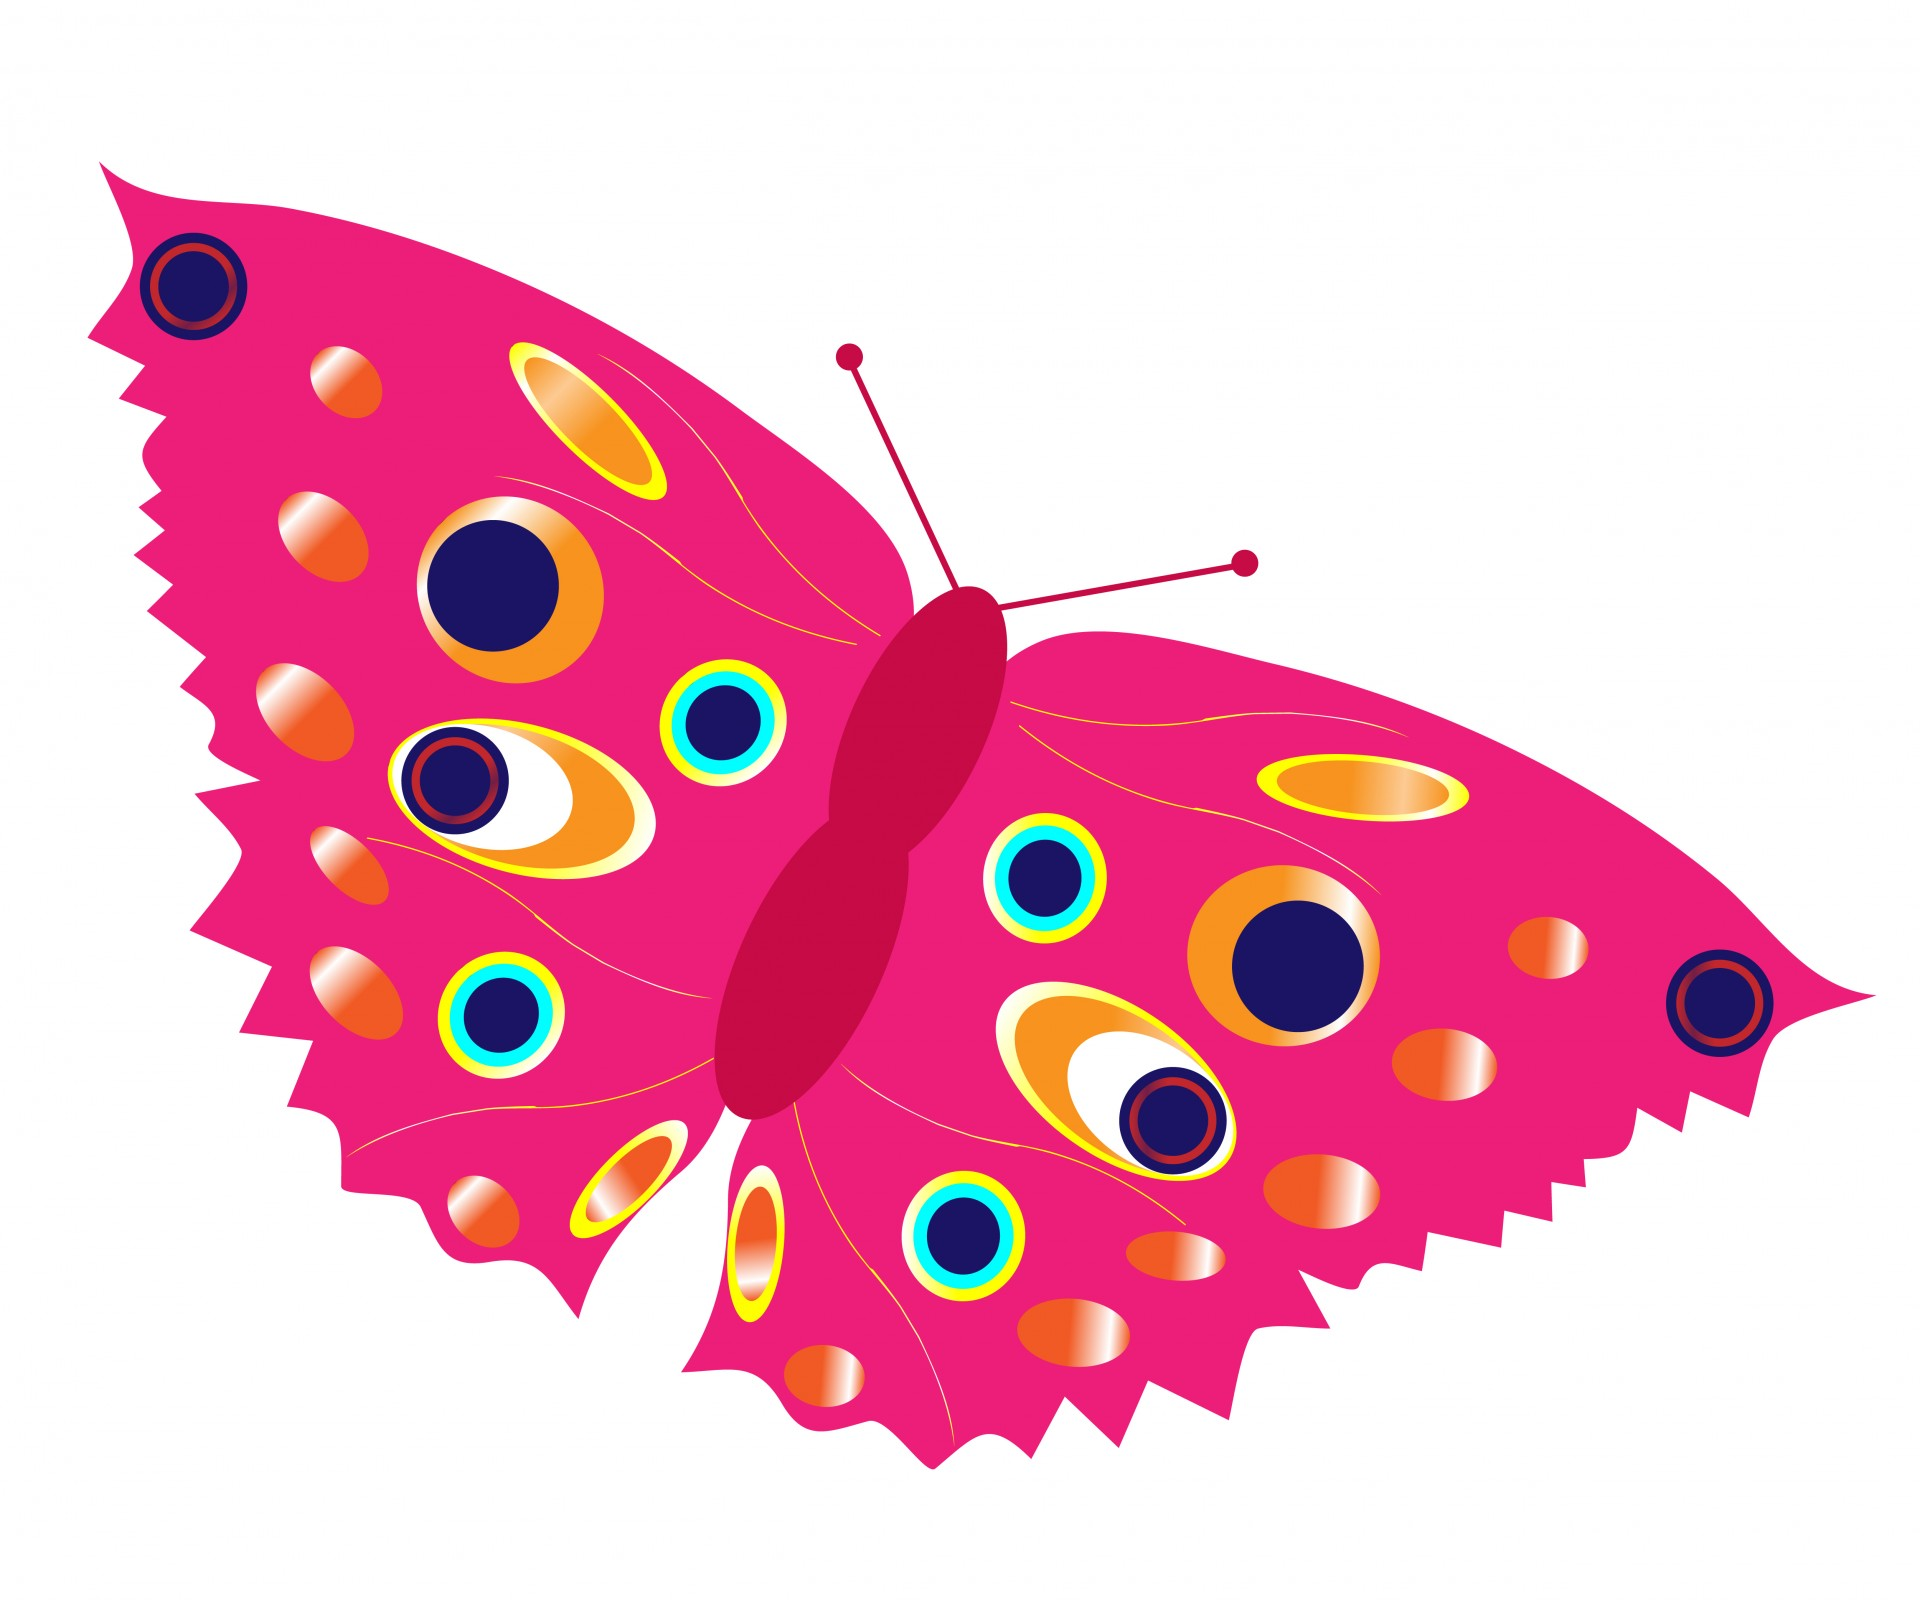 Other clipart colorful butterfly. Pink free stock photo